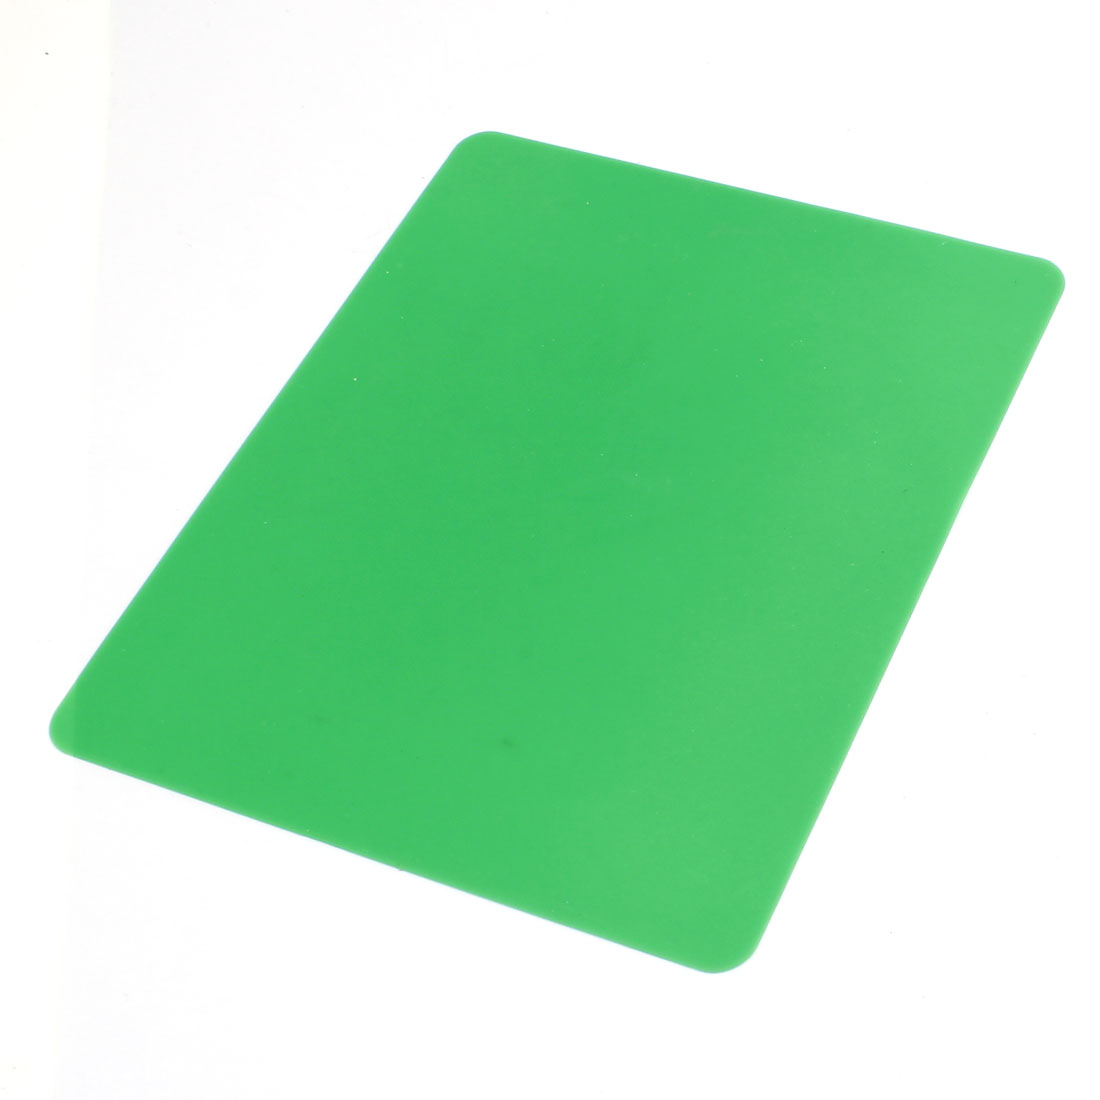 "8.4"" x 7"" Green Silicone Anti-skid Mouse Pad Mat for Notebook Computer"